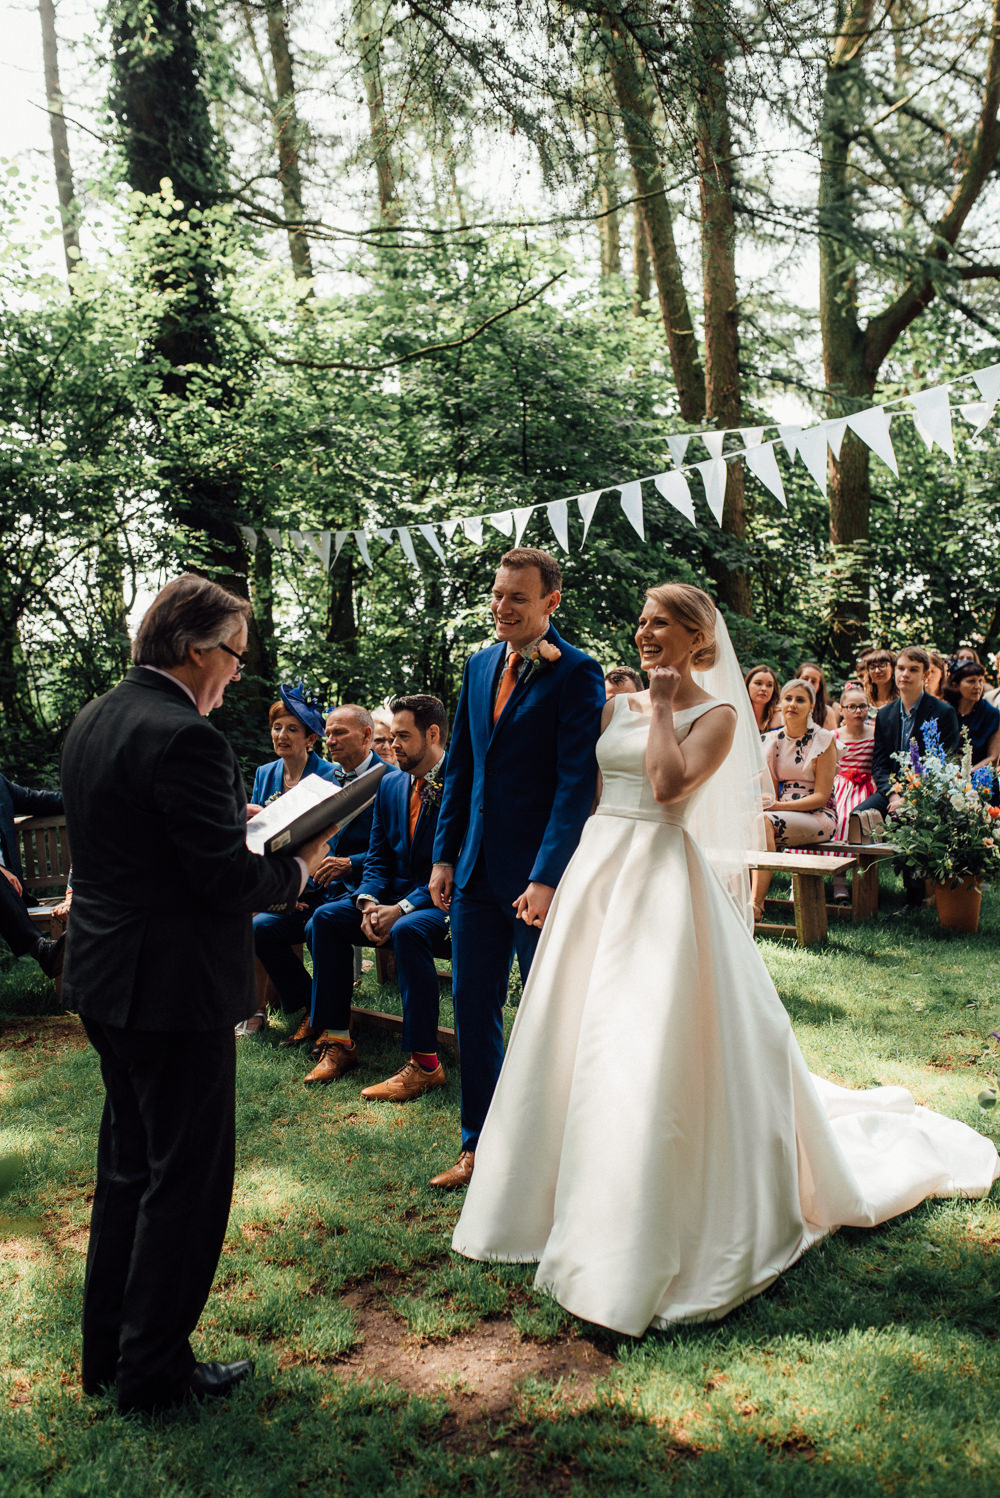 Woodland Outdoor Ceremony Bunting Flowers Lineham Farm Wedding Marni V Photography